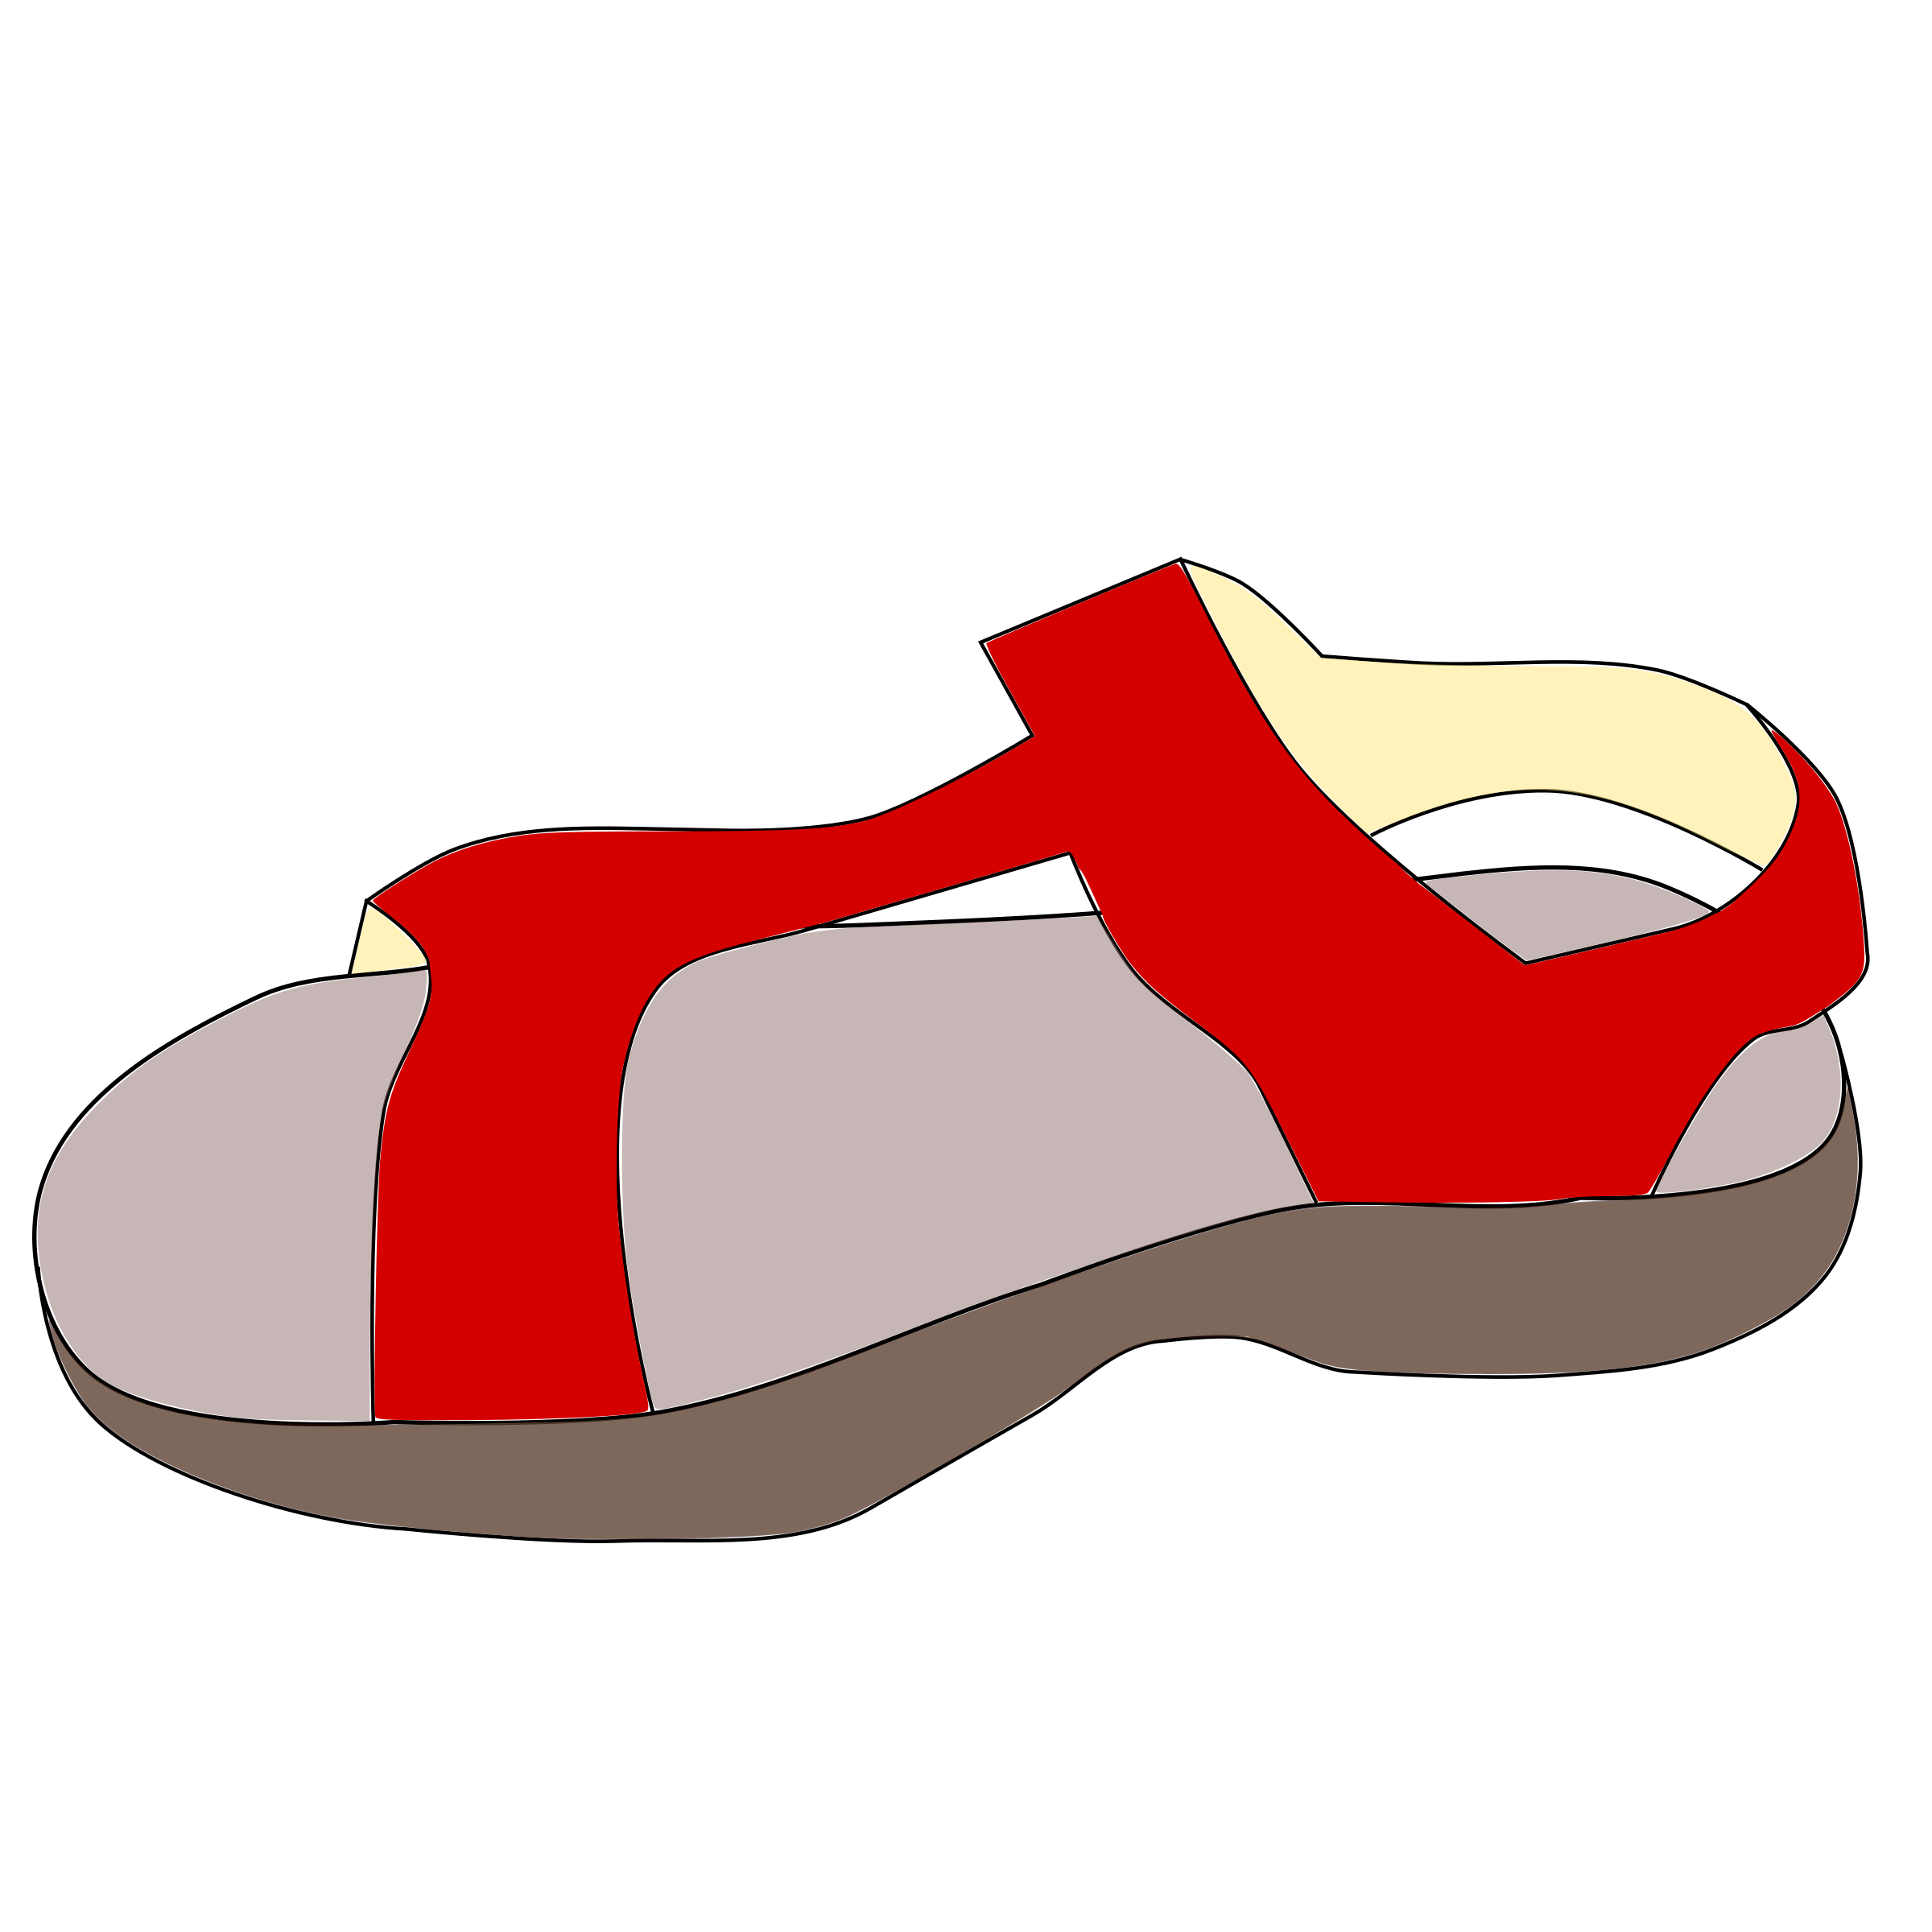 Red sandal by jarekadam